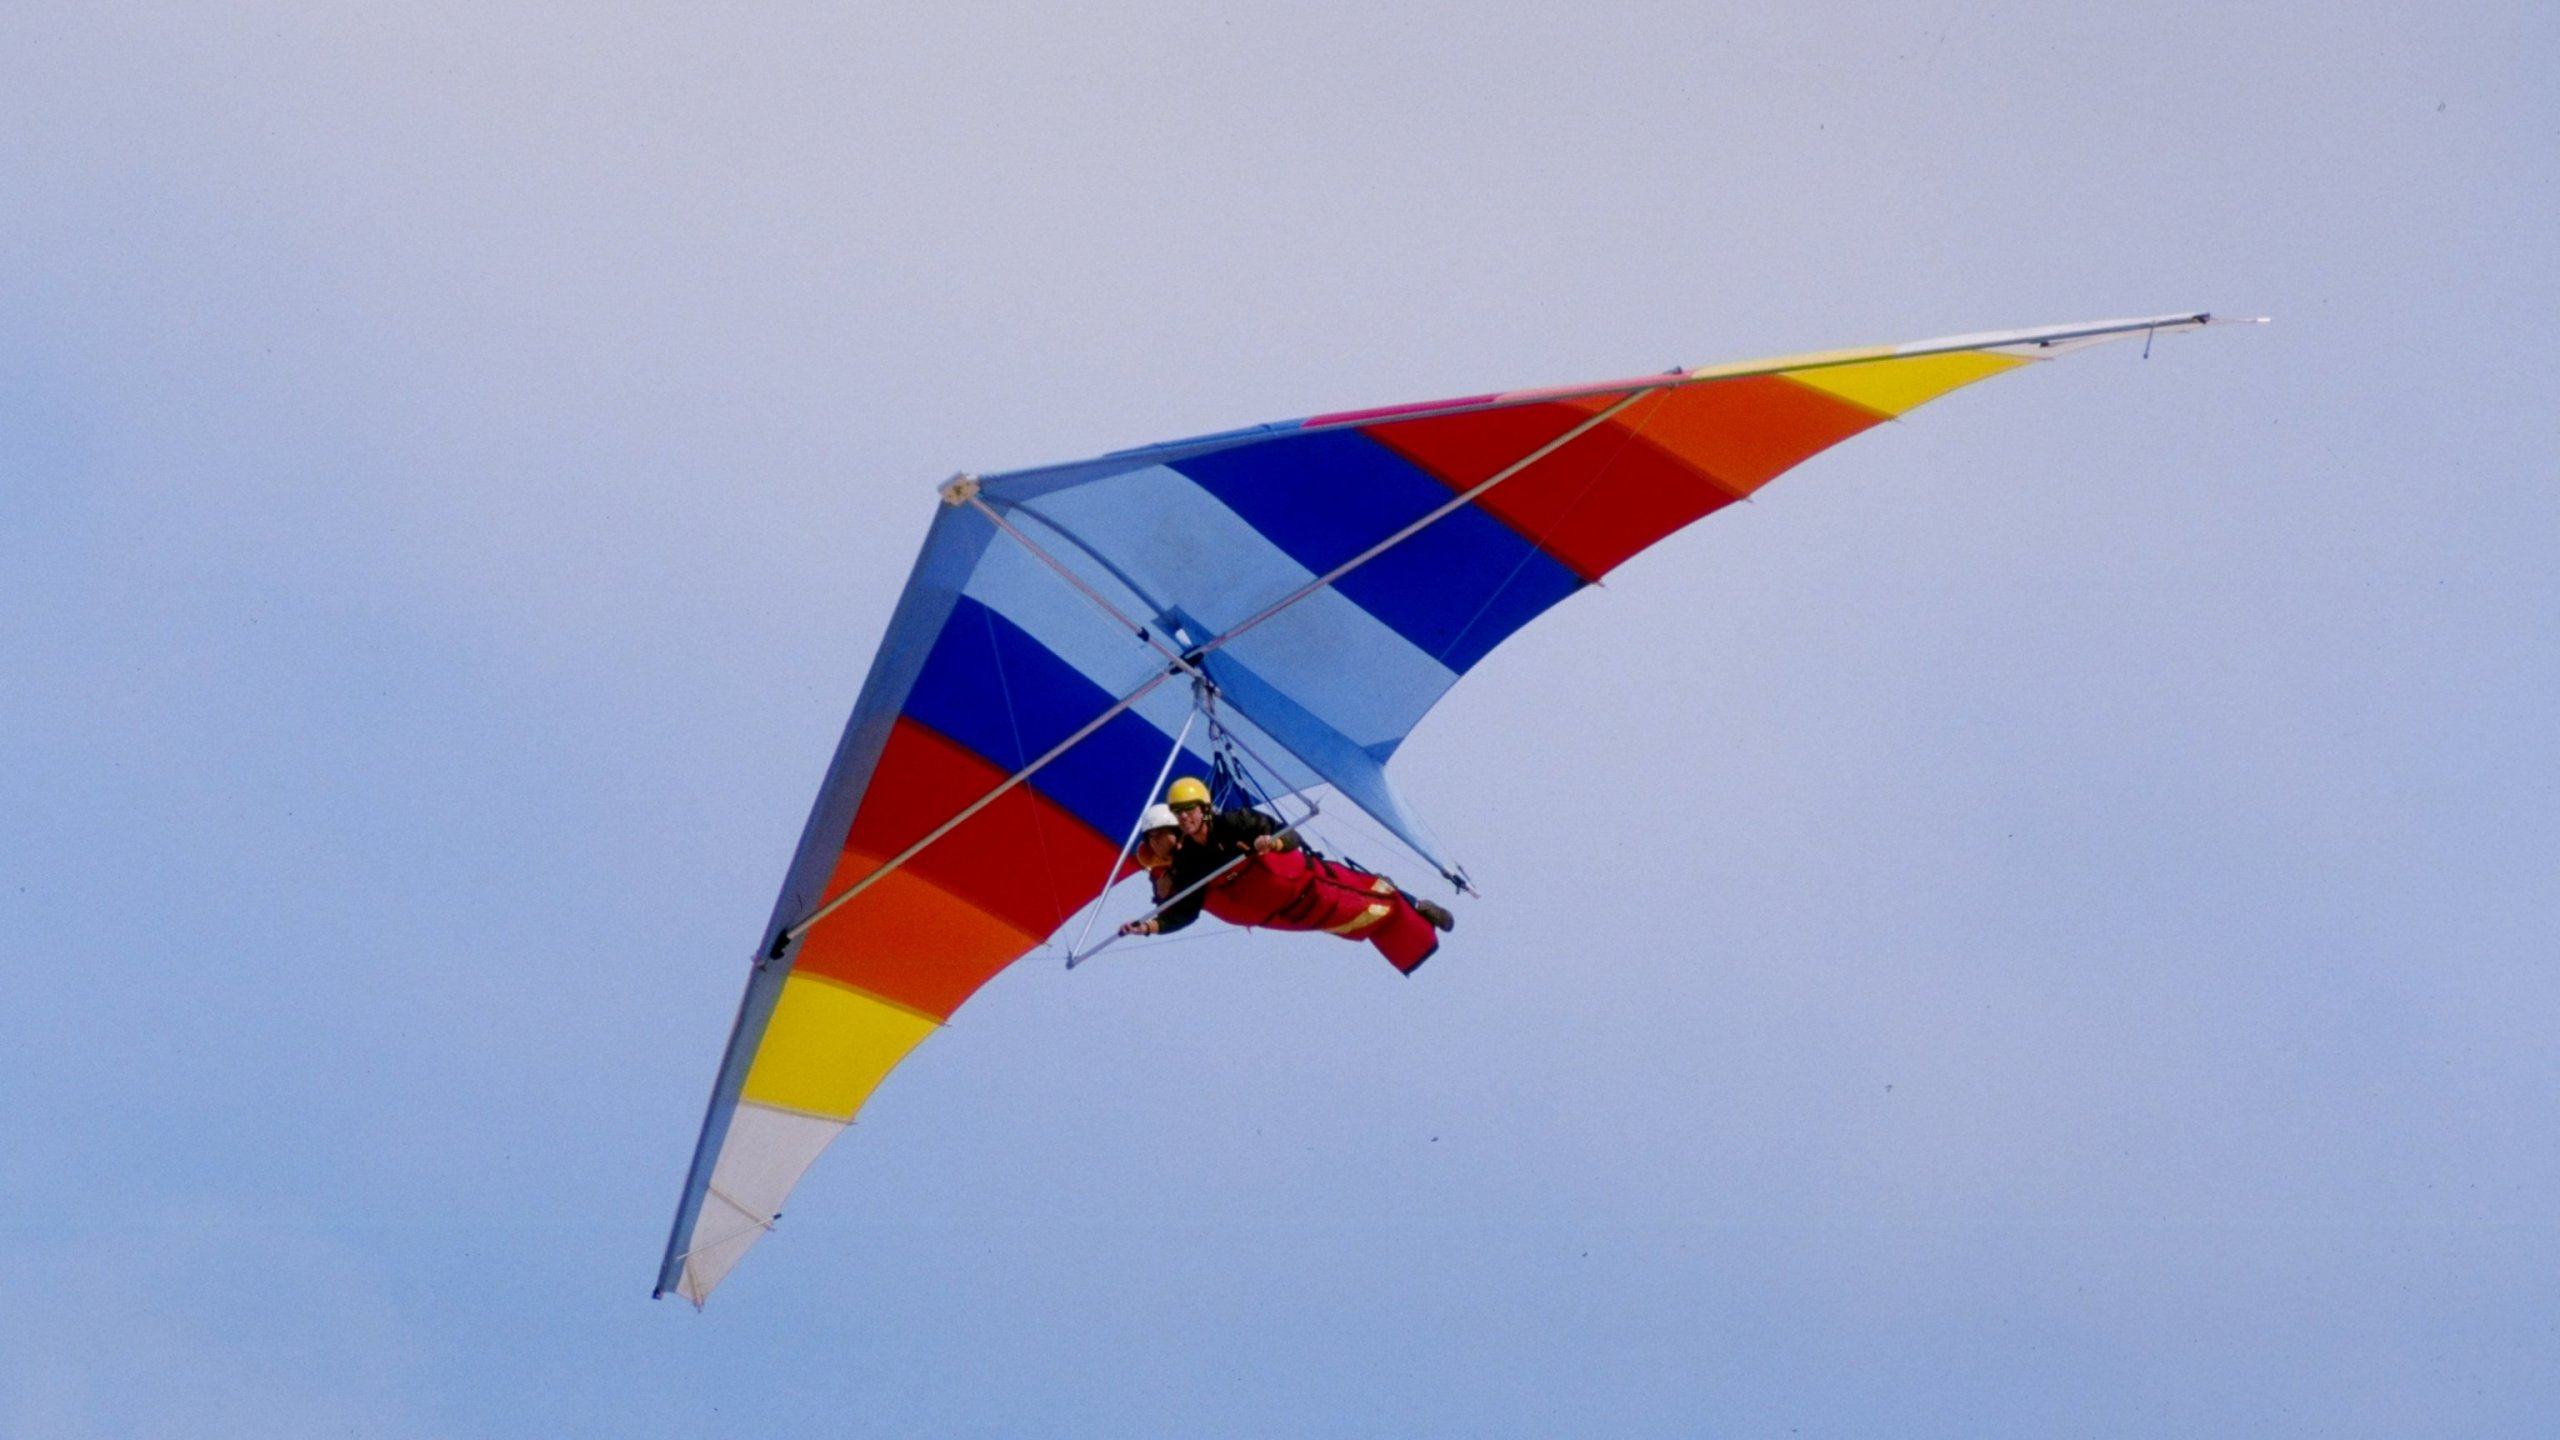 Man dies after hang gliding accident in East Tennessee